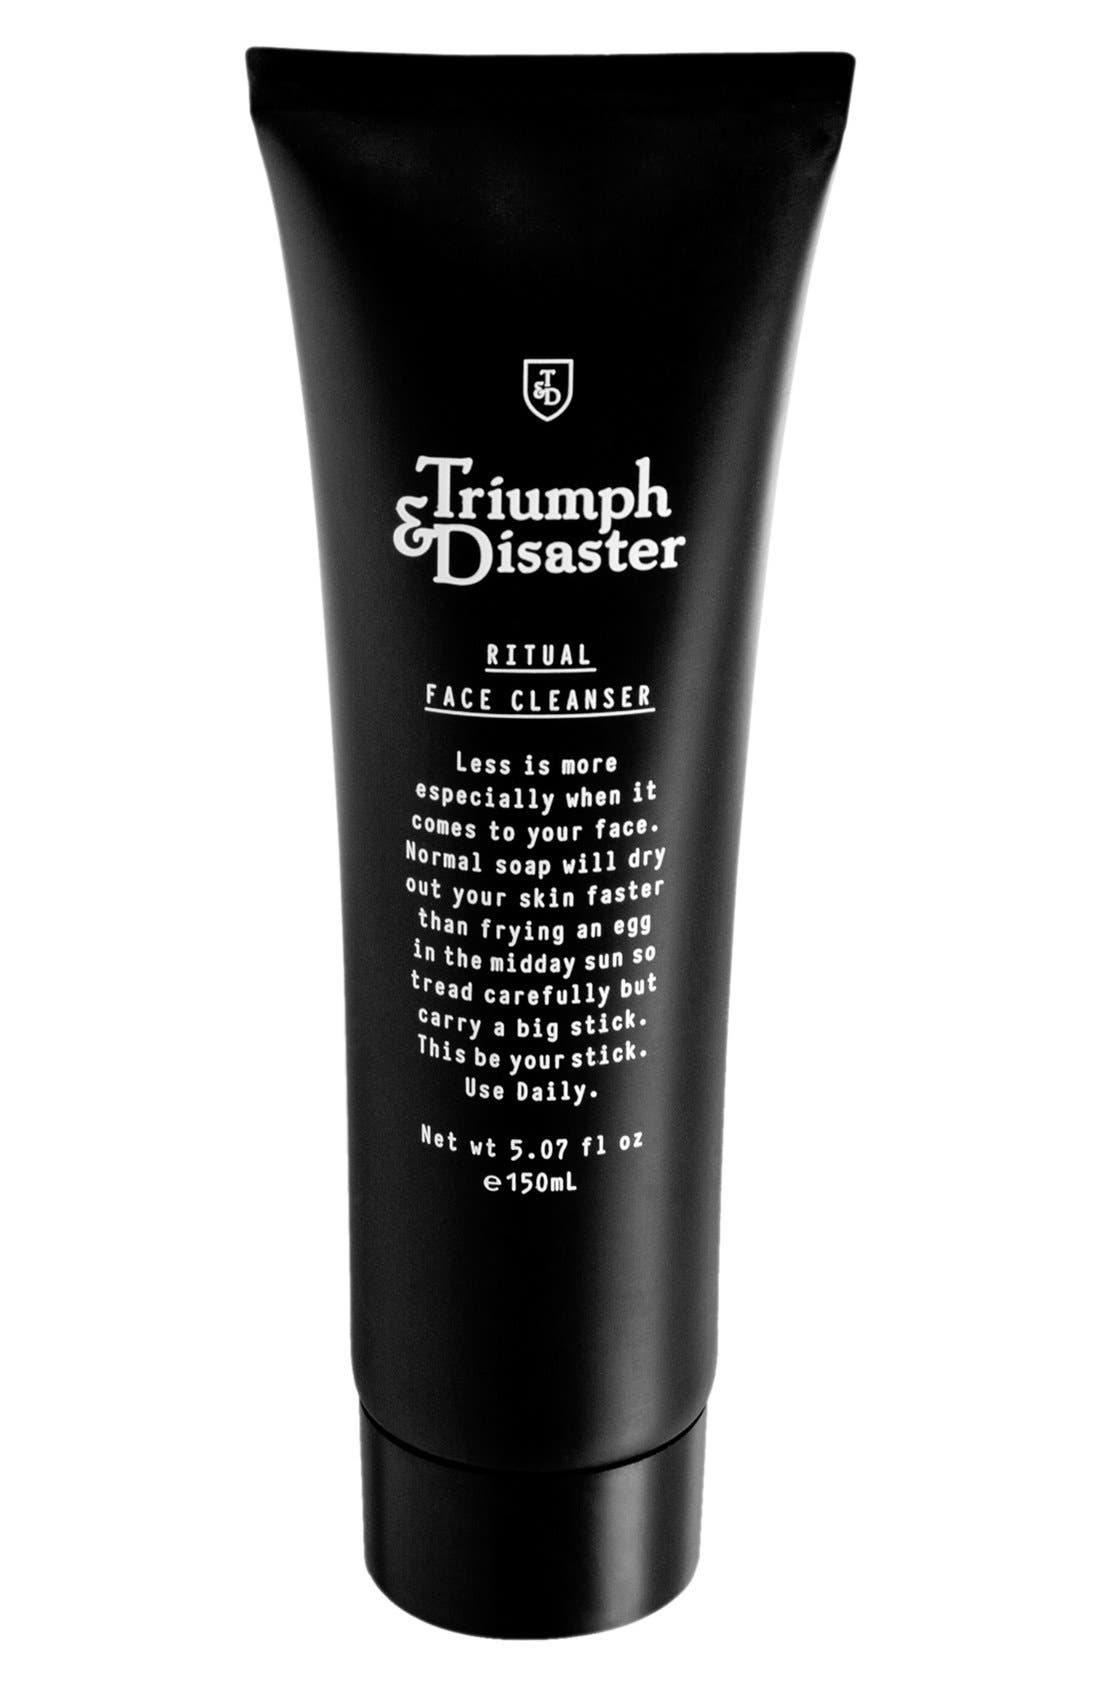 Triumph & Disaster 'Ritual' Face Cleanser